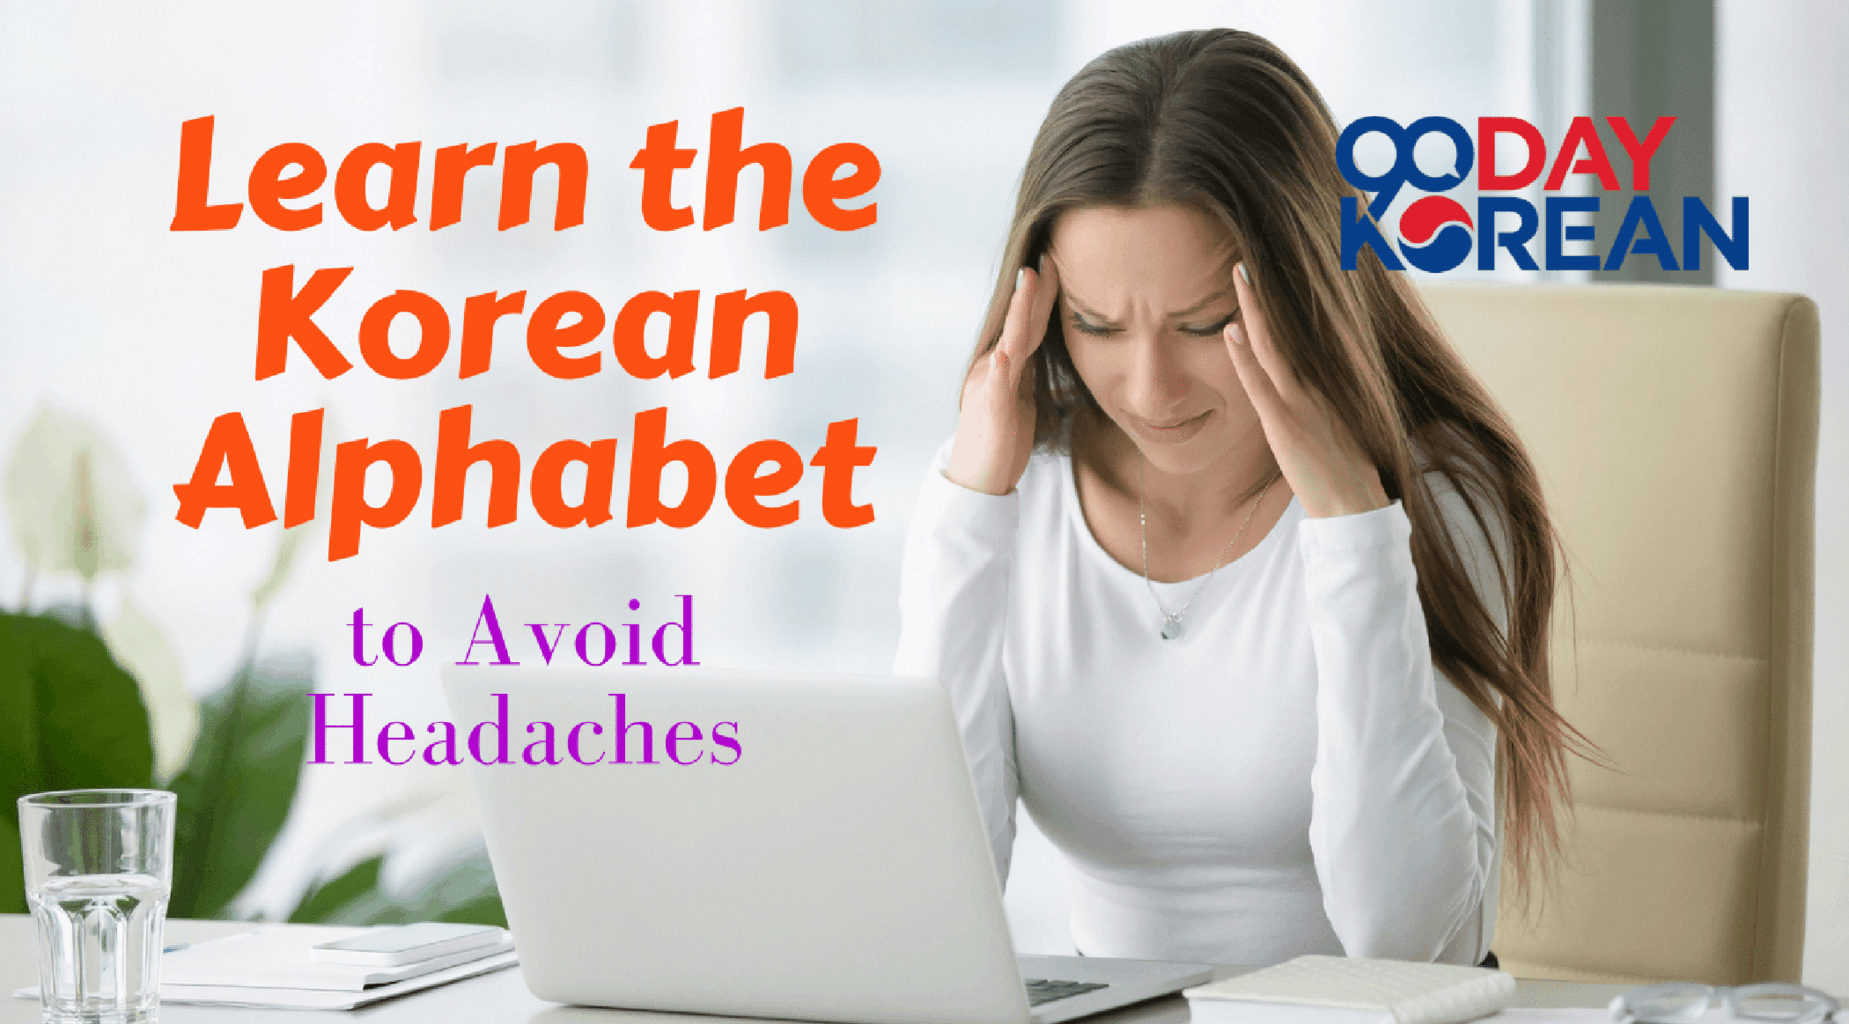 Learn the Korean Alphabet to Avoid Headaches